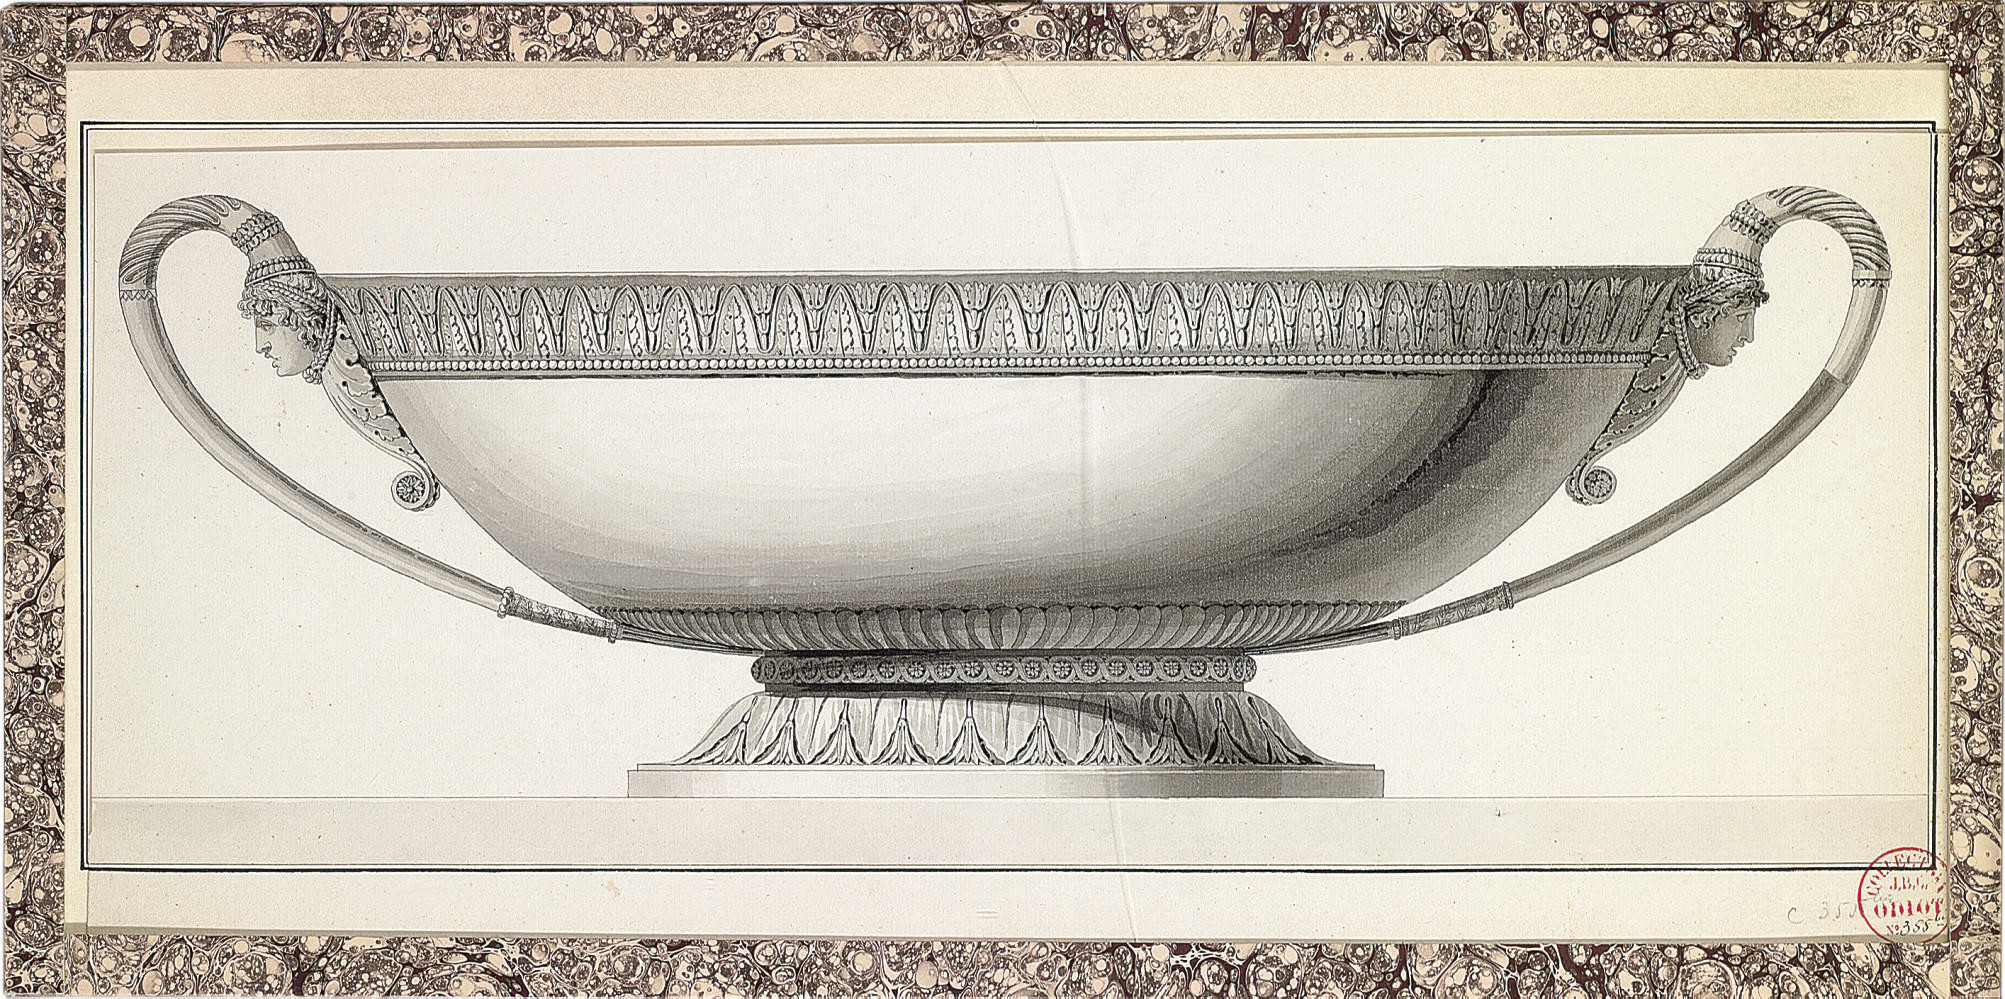 Design for a dish chased with foliage and with Grecian masks at the handles